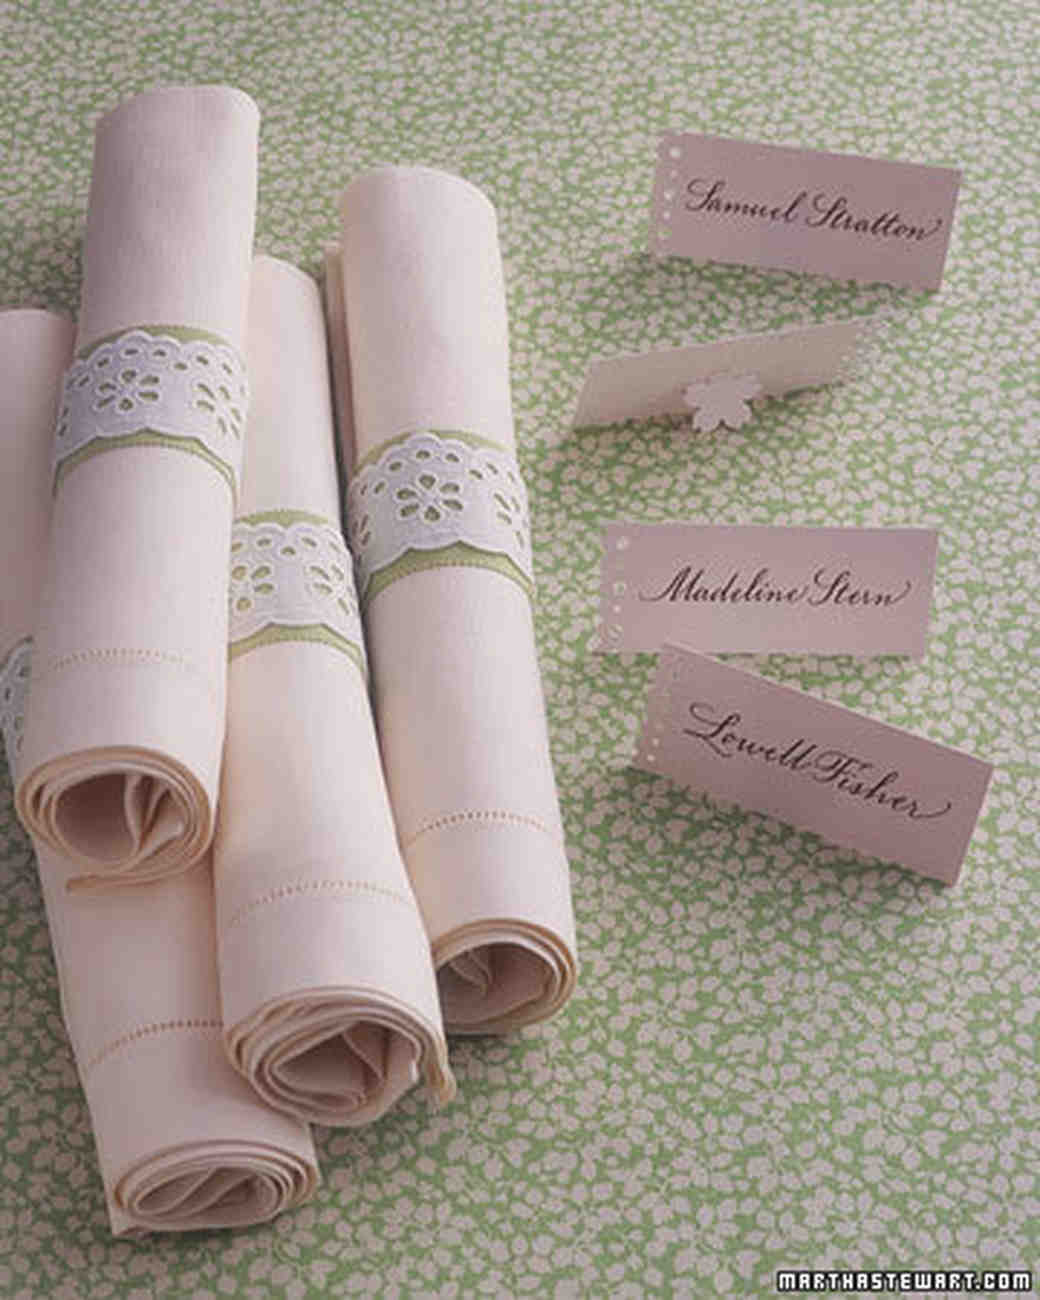 Personalized napkin ideas martha stewart weddings eyelet napkin rings solutioingenieria Images